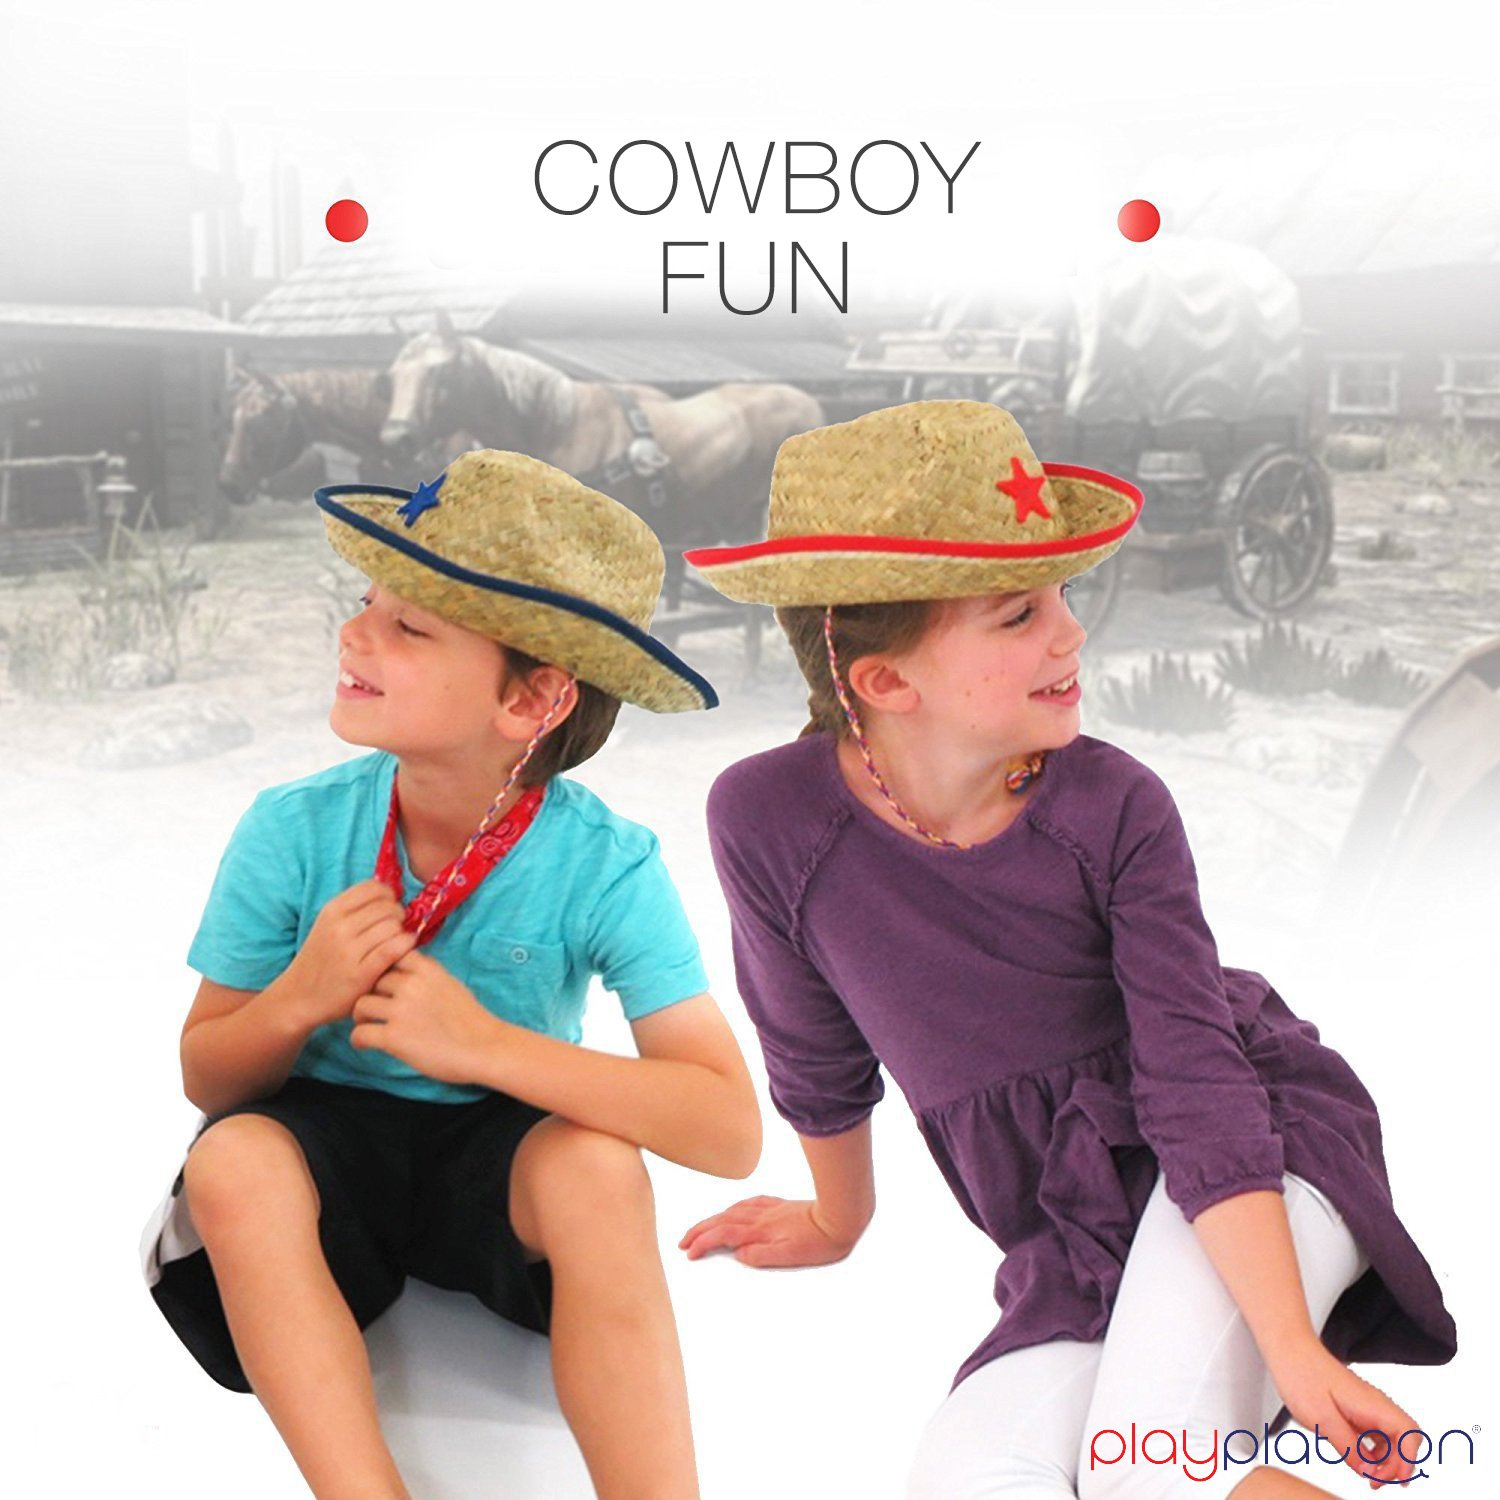 Dozen Straw Cowboy Hats with Cowboy Bandanas 6 Red /& 6 Blue for Kids Makes Great Birthday Party Hats for Boys and Girls